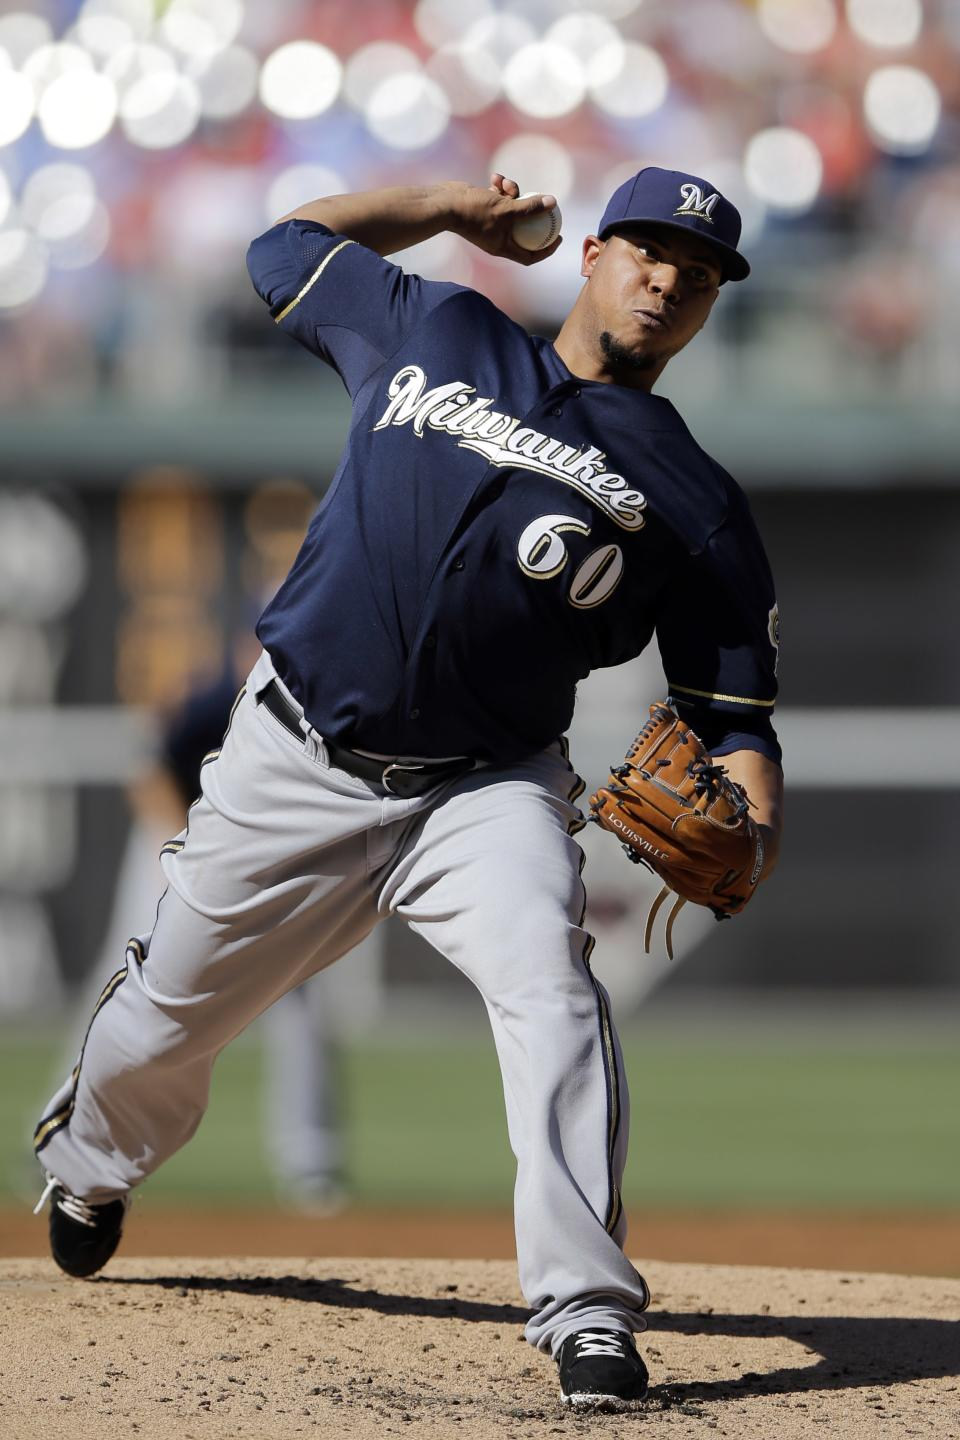 Milwaukee Brewers' Wily Peralta pitches in the second inning of a baseball game against the Philadelphia Phillies, Saturday, June 1, 2013, in Philadelphia. (AP Photo/Matt Slocum)